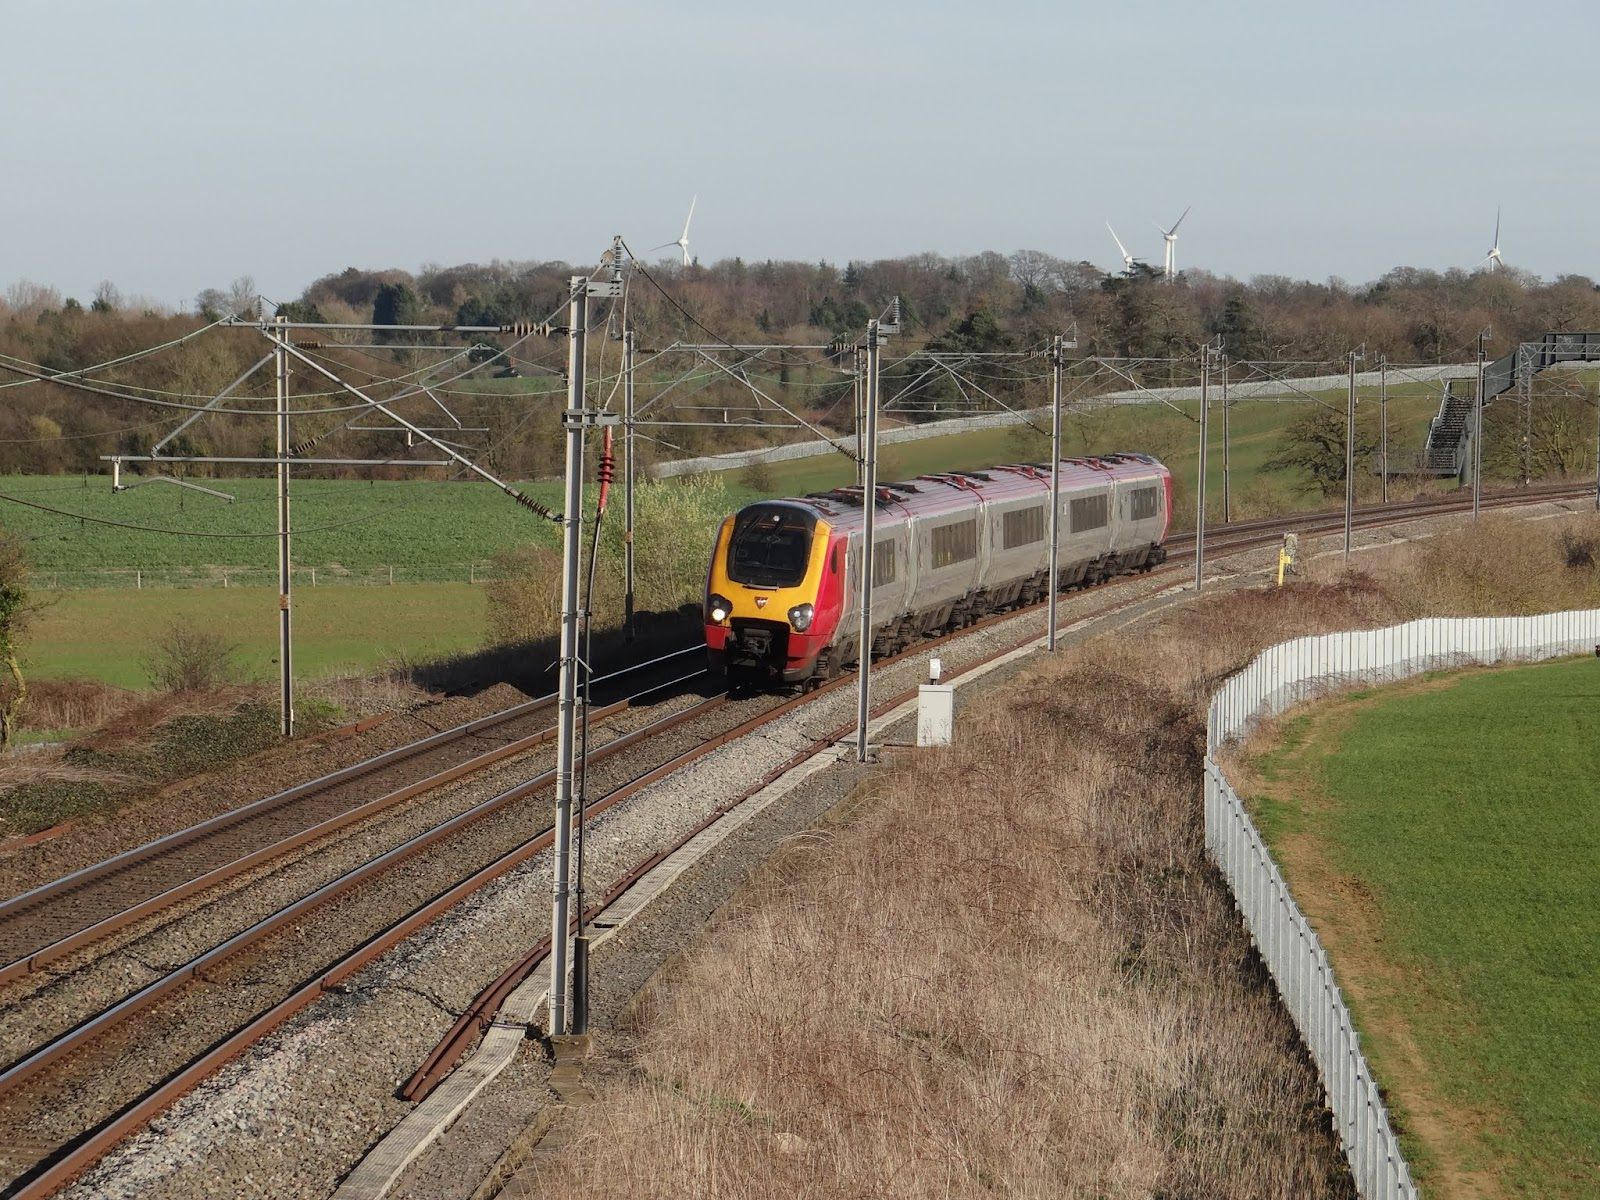 Here's one but it's not a Pendolino